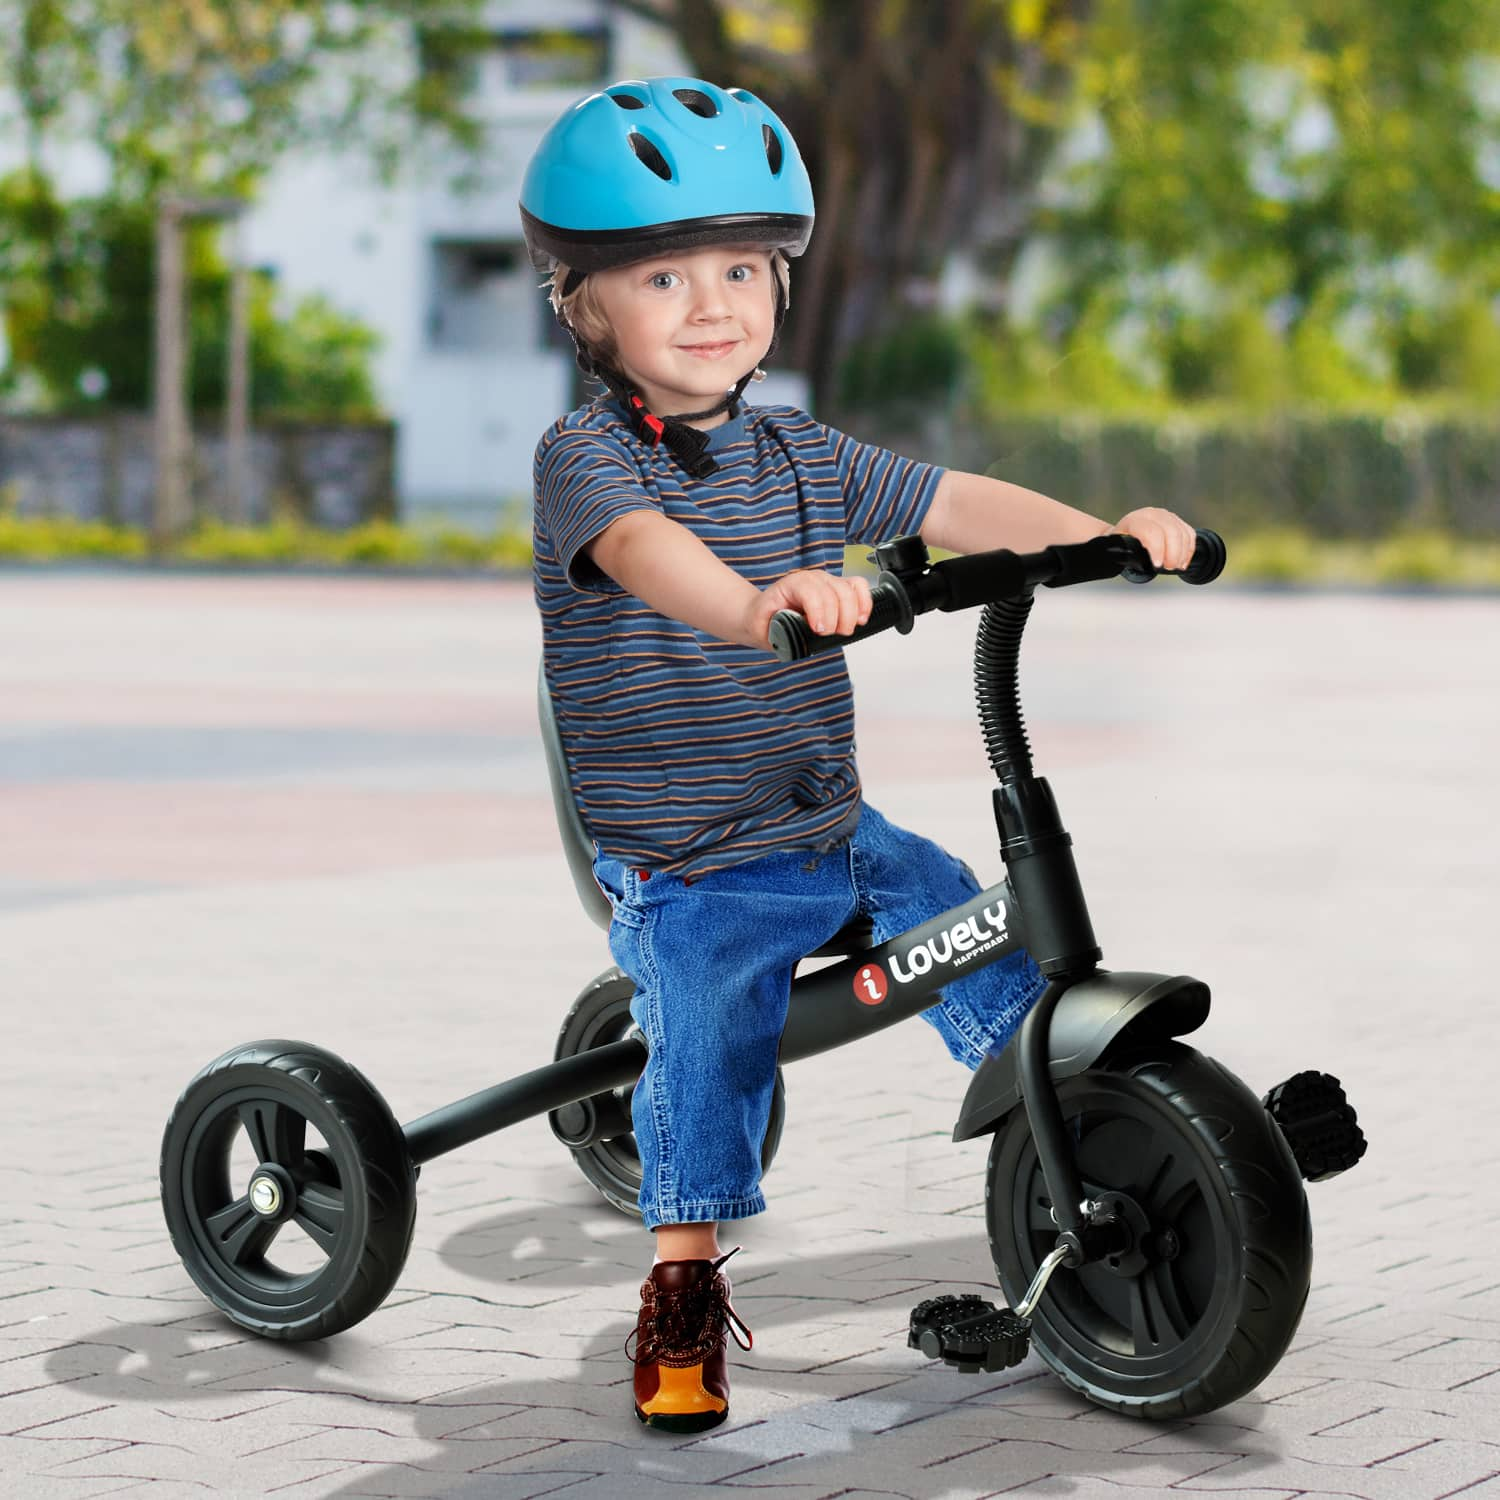 Qaba 3-Wheel Recreation Ride-On Toddler Tricycle with Bell - $34.99 + Free Shipping